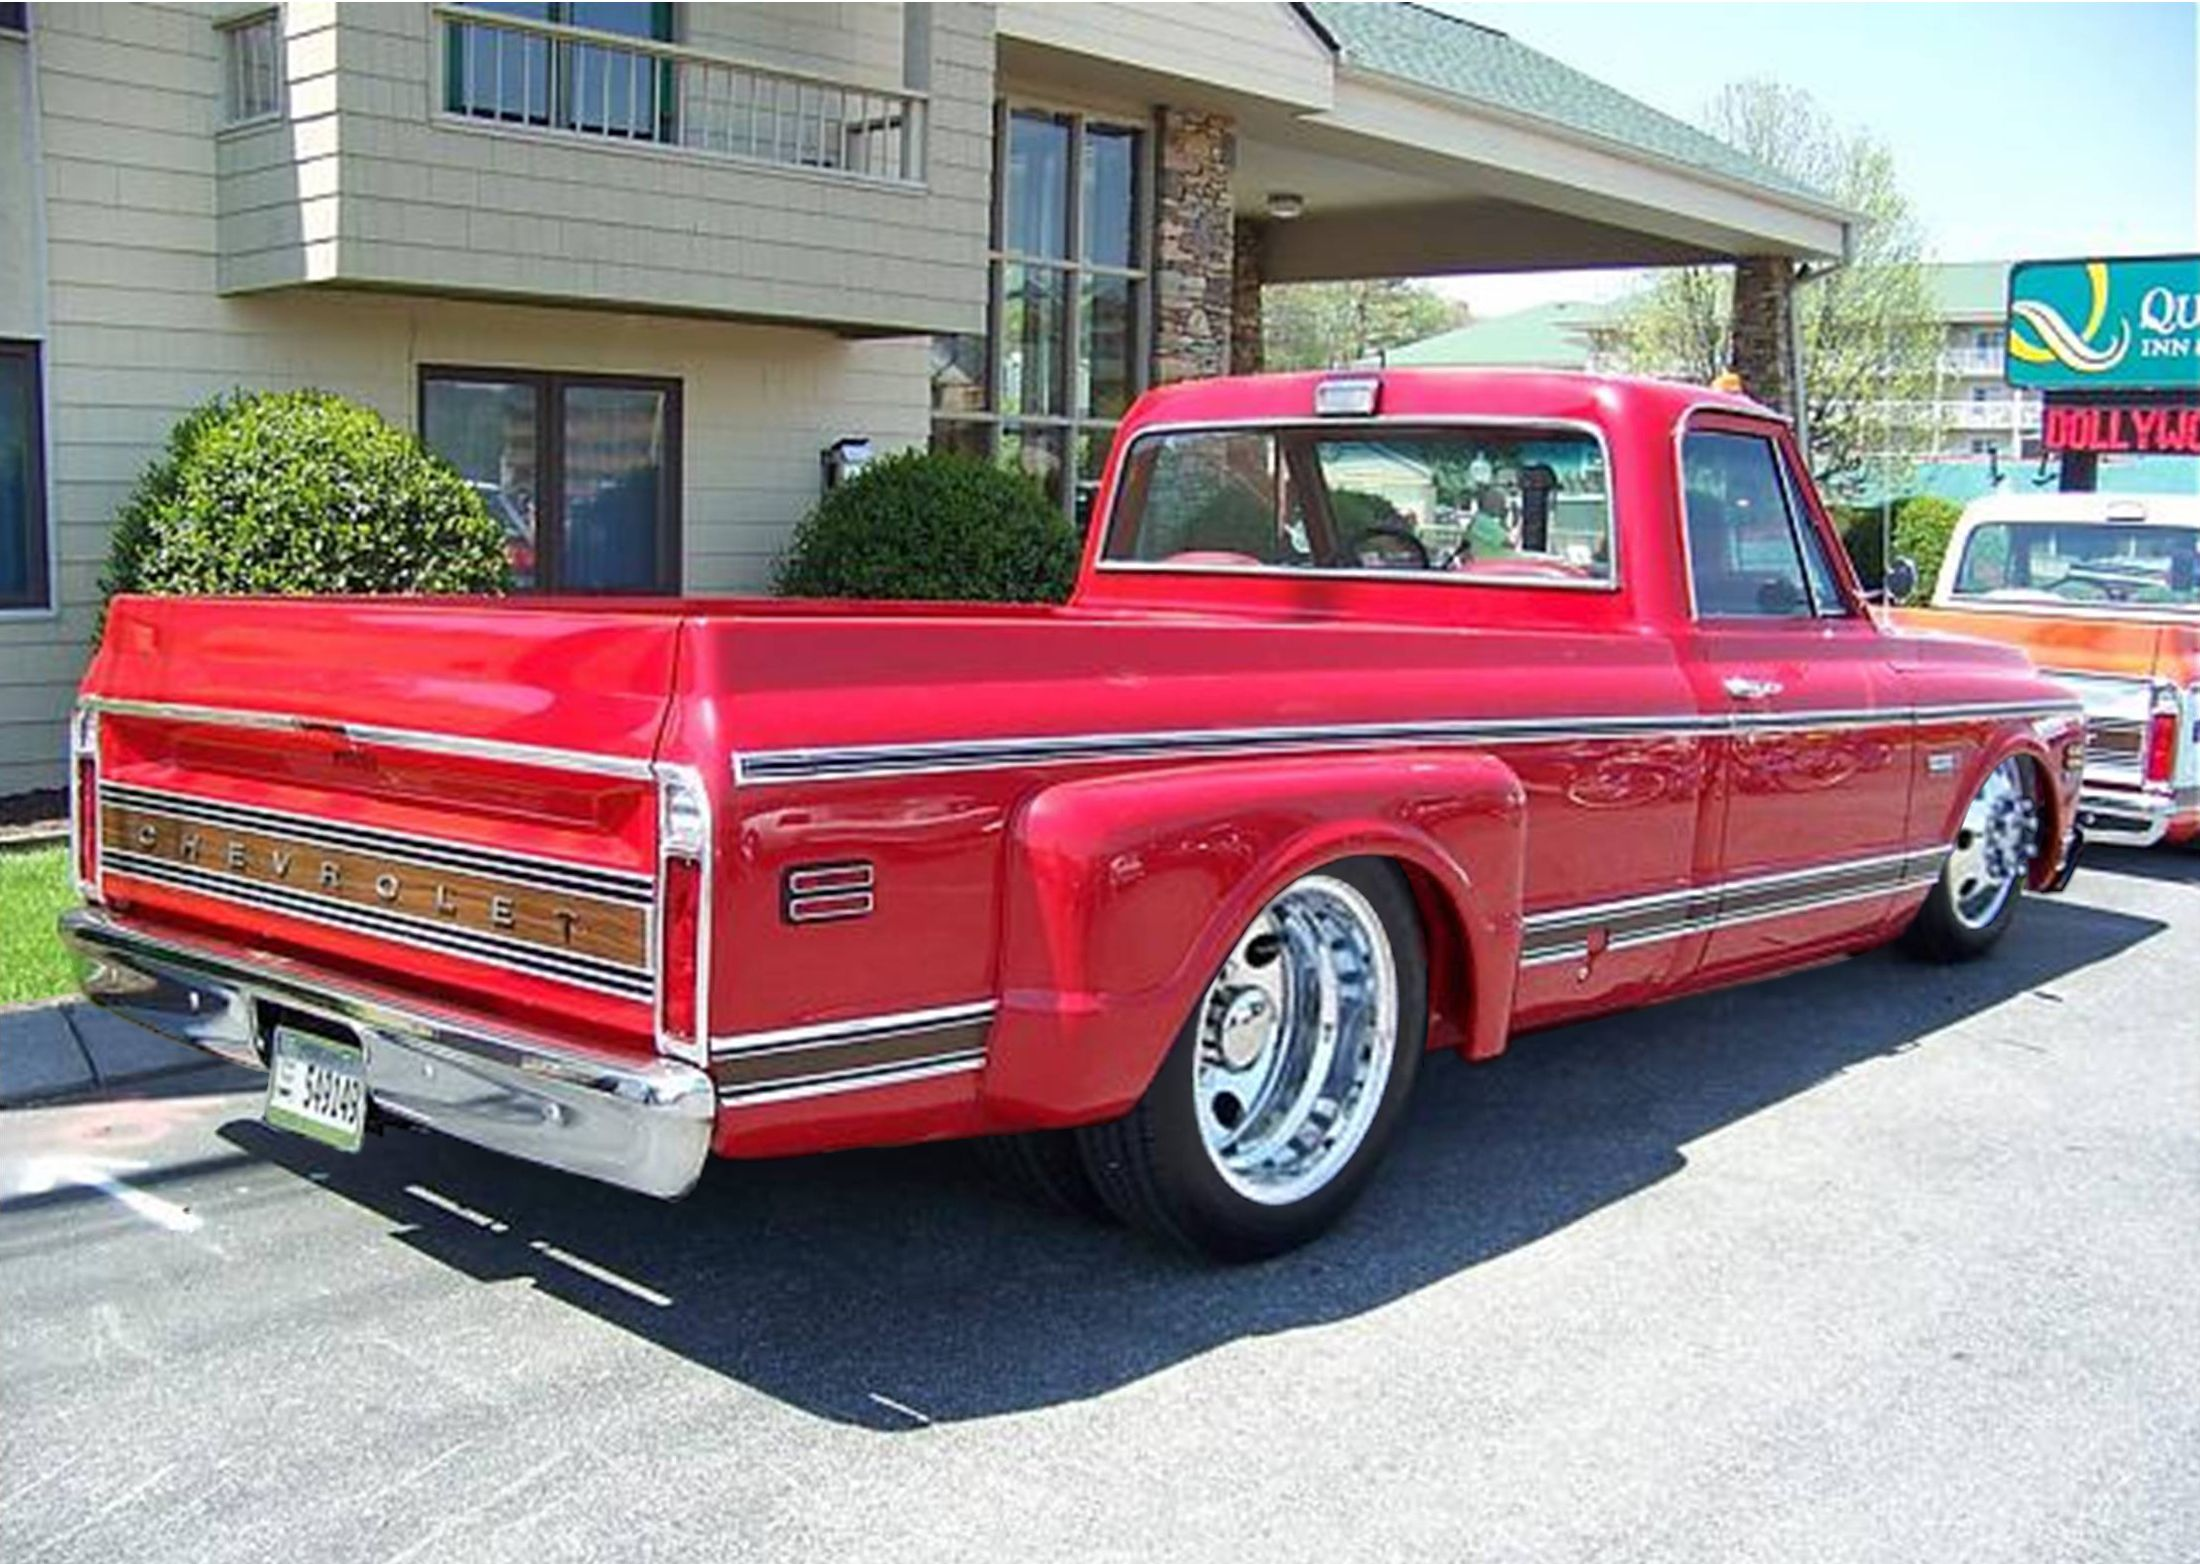 1972 chevy dually c10 pinterest cars 72 chevy truck and gmc trucks. Black Bedroom Furniture Sets. Home Design Ideas